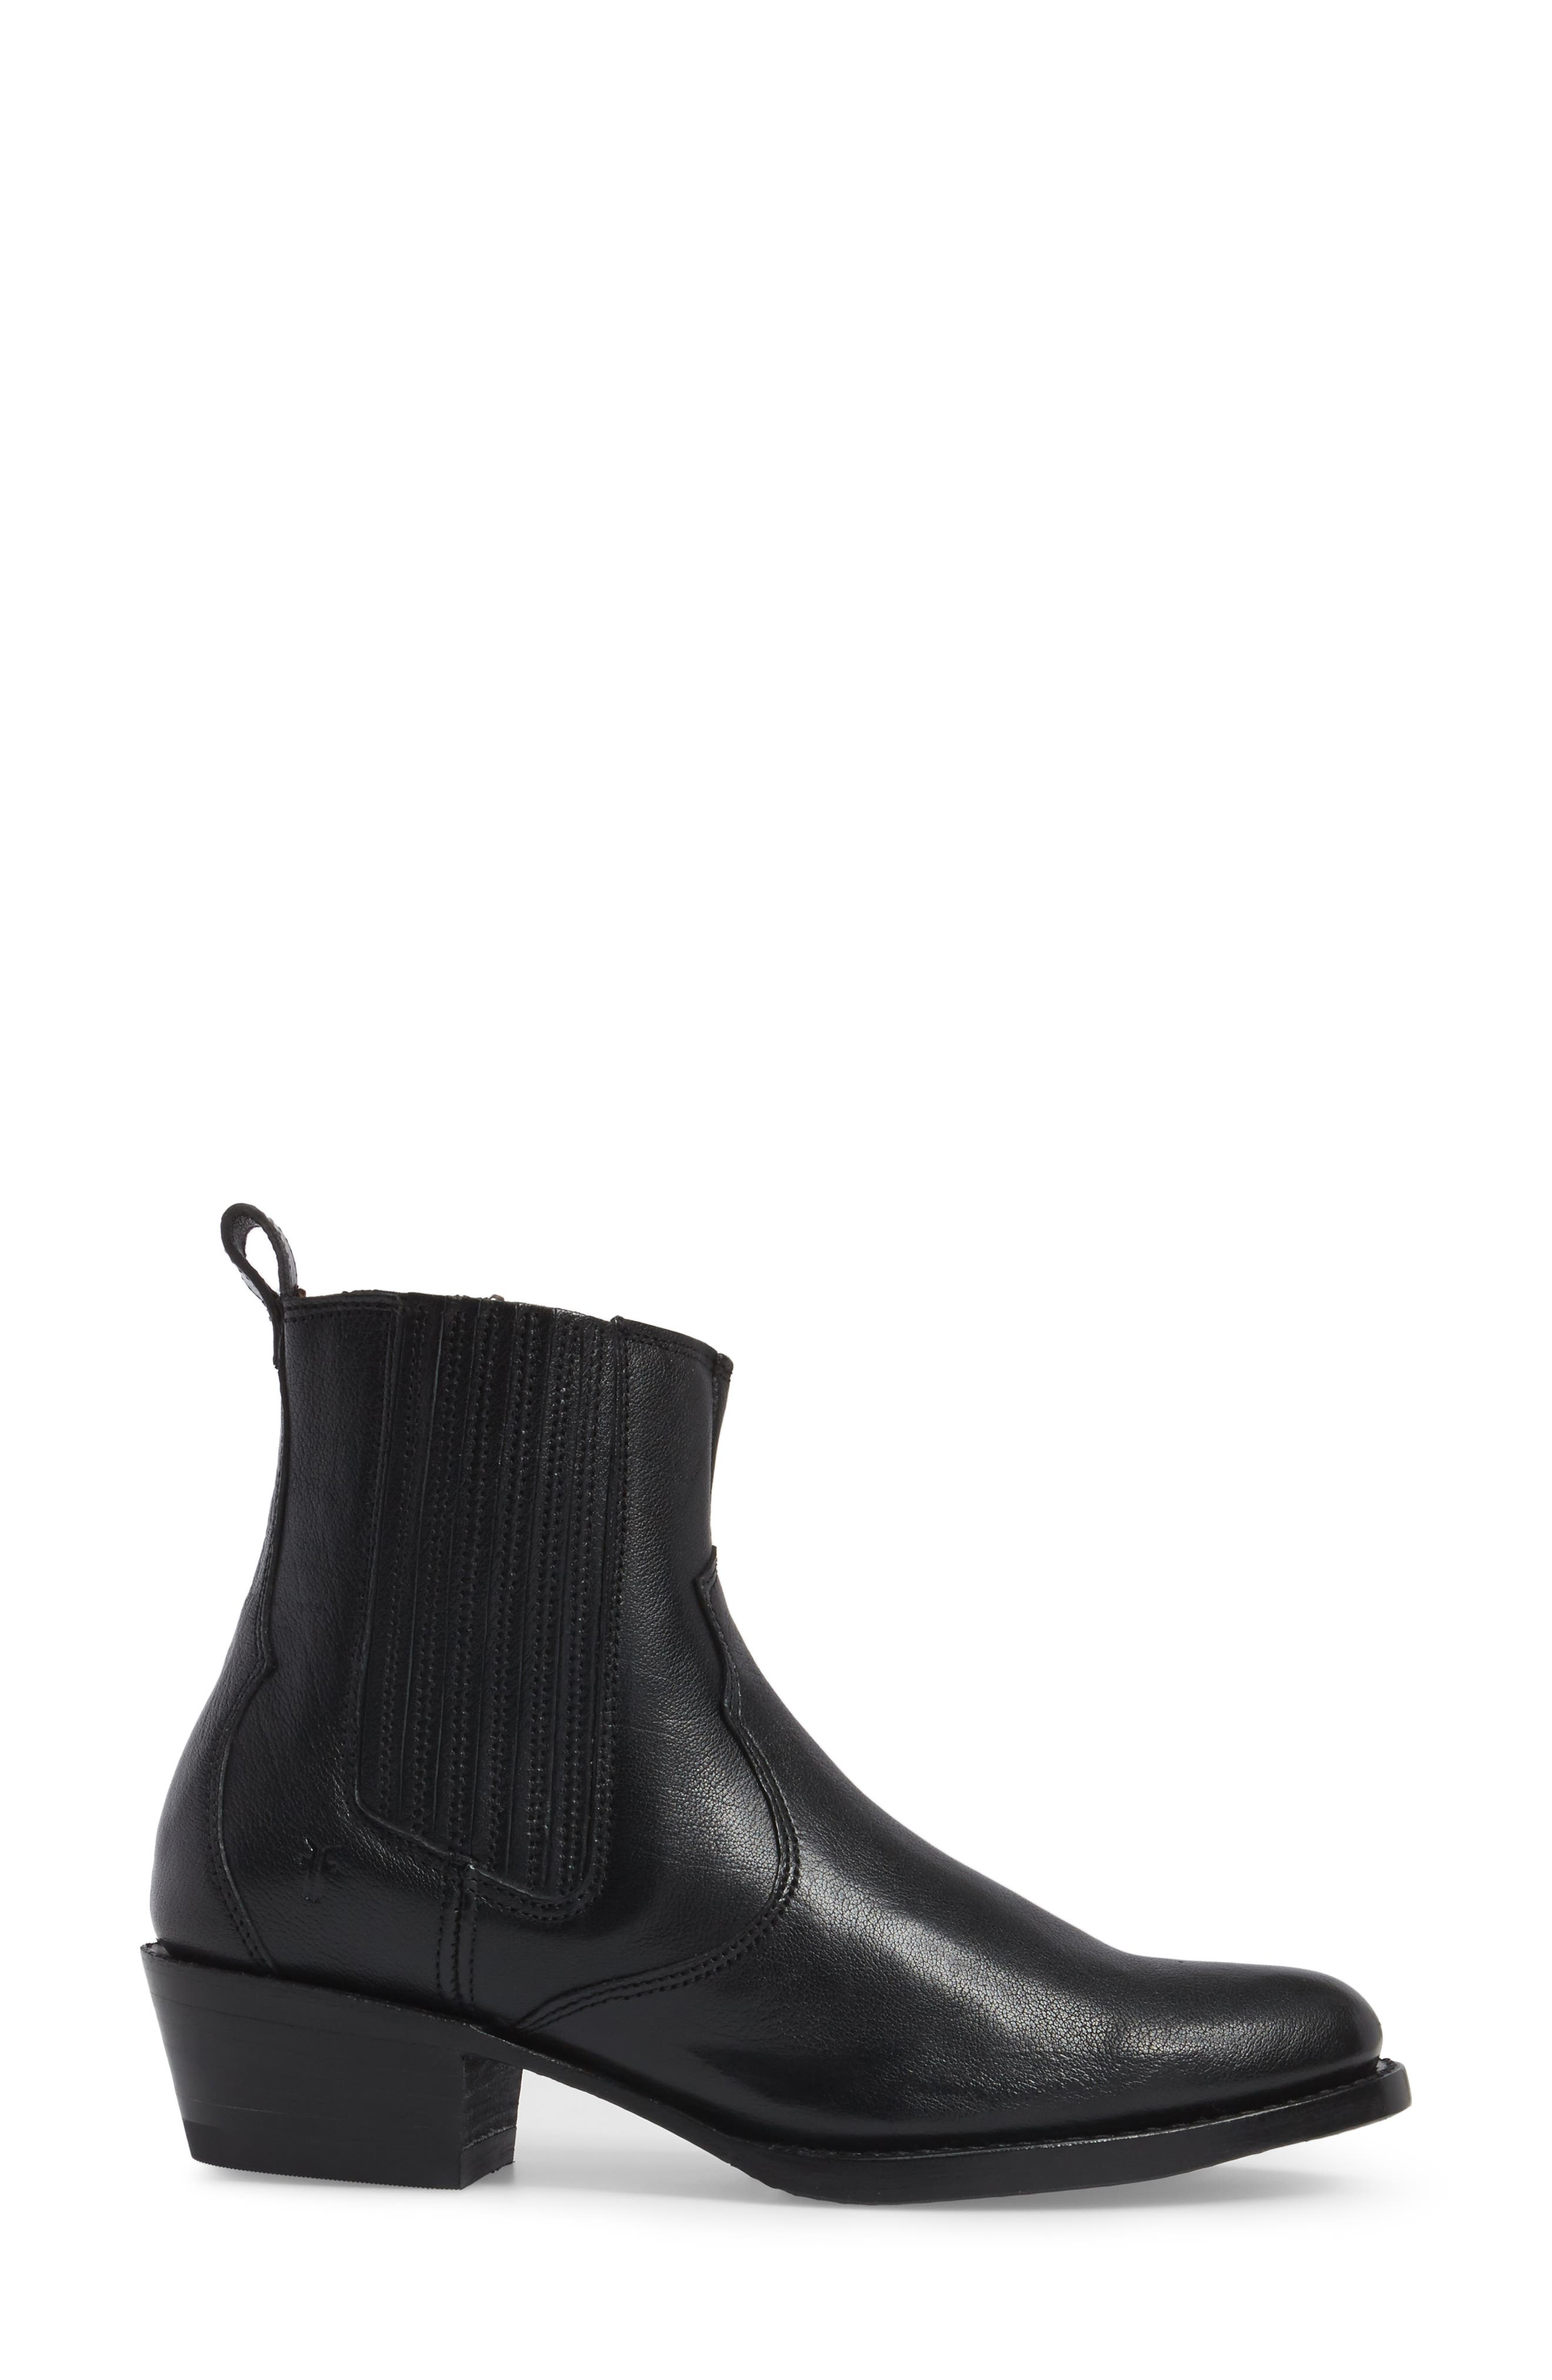 Diana Chelsea Boot,                             Alternate thumbnail 3, color,                             001